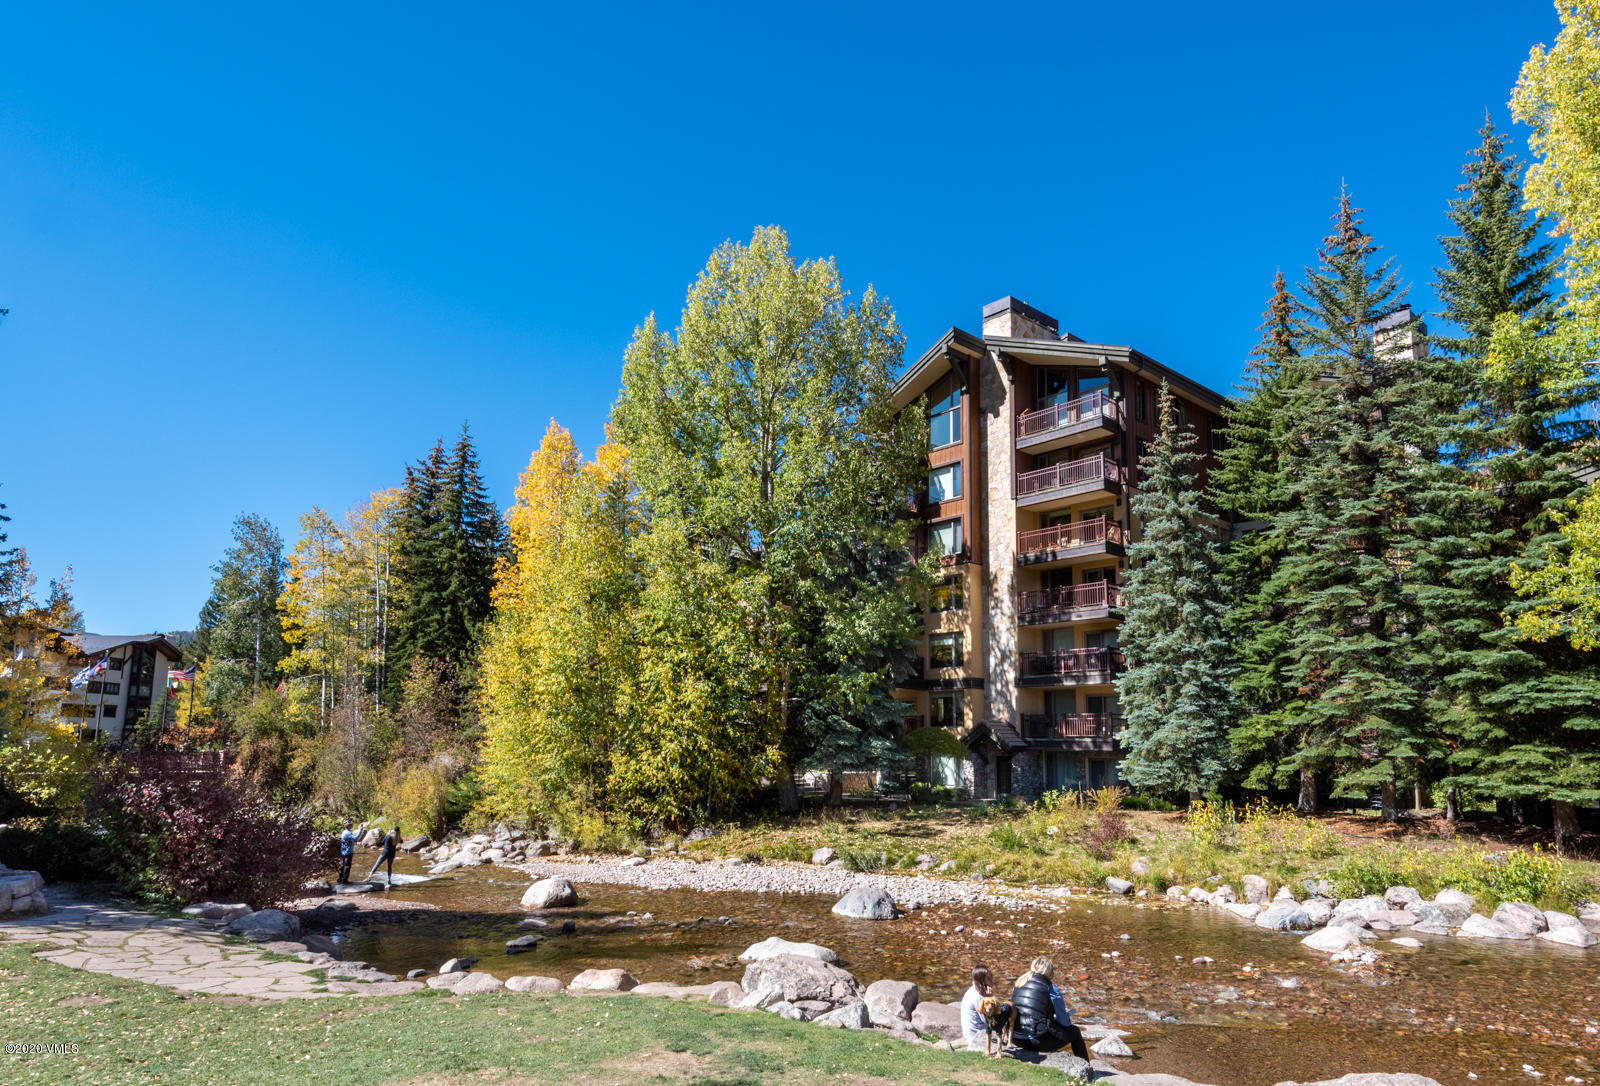 Vail Village luxury 3 Bedroom Condominium, where you can relax on 1 of 2 decks and take in the  spectacular Vail Mountain and Gore Creek views and listen to the peaceful sounds of water flowing by.  Entertaining is easy in the gourmet chef's kitchen open to the living room with gas stone fireplace and spacious dining area with custom storage and lighting.Wake up in the exceptionally large main bedroom with its own gas fireplace and large balcony overlooking the creek and mountains.  Relax after an active day of skiing in the steam shower and jacuzzi tub in the main bath. The custom closets, lighting, humidification, added storage, washer/dryer, beamed ceilings, custom Alder panelling, wide hardwood plank flooring, silk carpeting, silk window coverings define luxury.  Relax in the outdoor hot tub, heated pool, or warm up next to the fire pit after a day on the mountain.Look no further for the condo on the creek with amazing mountain views and 2 garage assigned spaces.  Manager on site.  Village Center, a very special condominium in the center of Vail to be your home in Vail.https://villagecenter5c.relahq.com/?mls